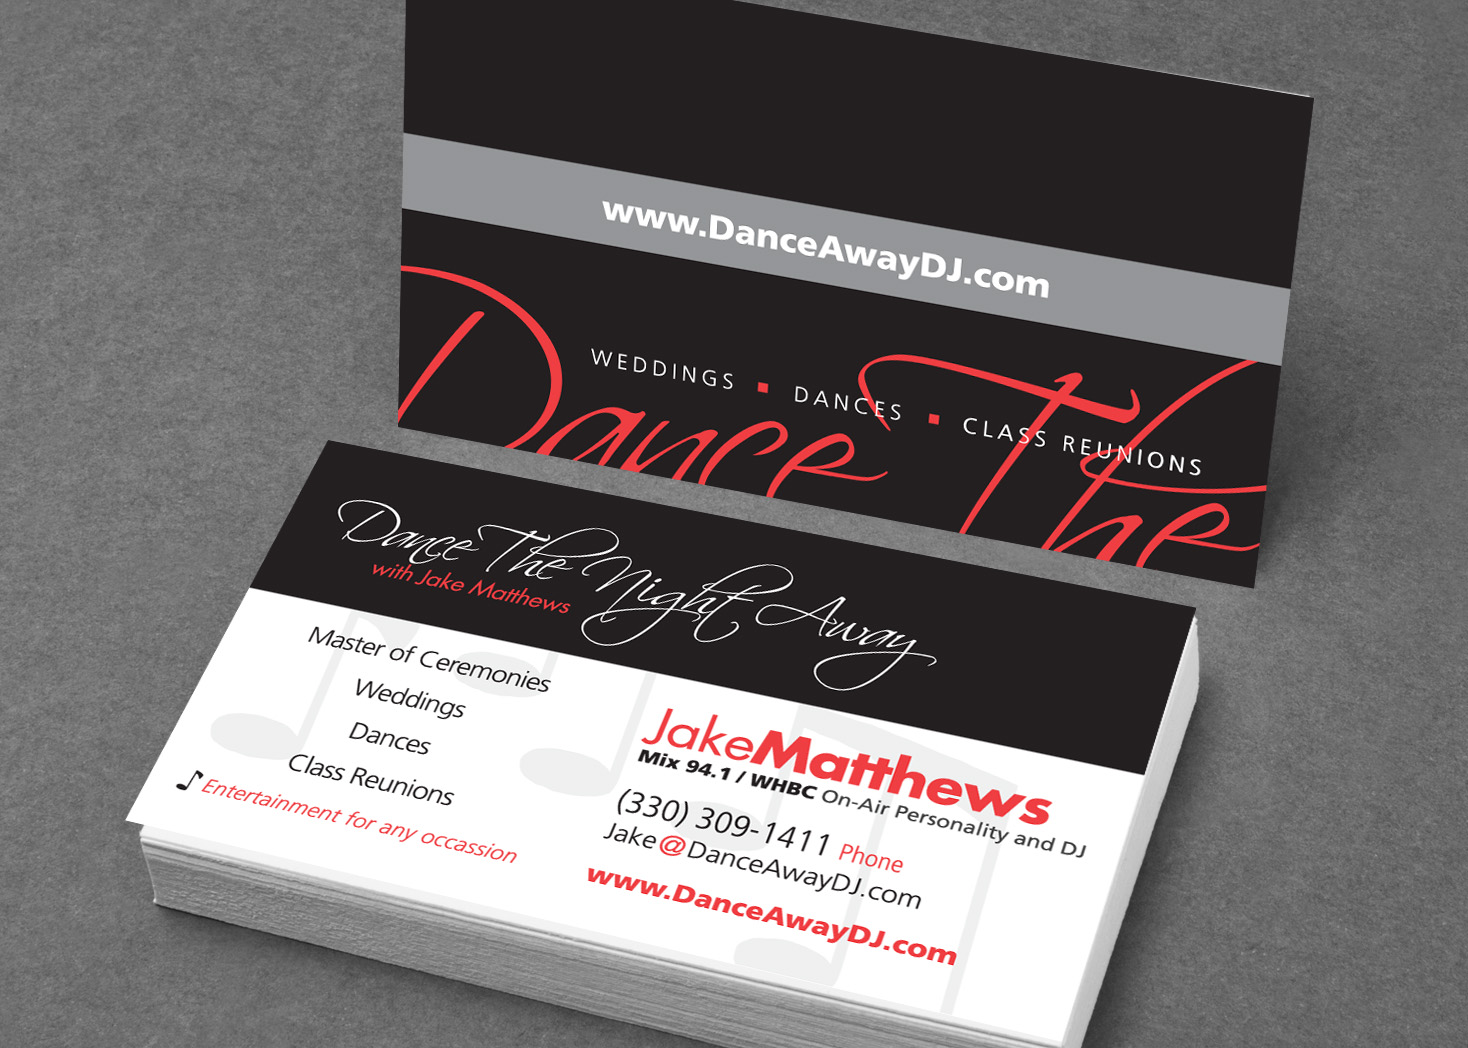 Dance away dj business card design les lehman website design and print and visual graphic design colourmoves